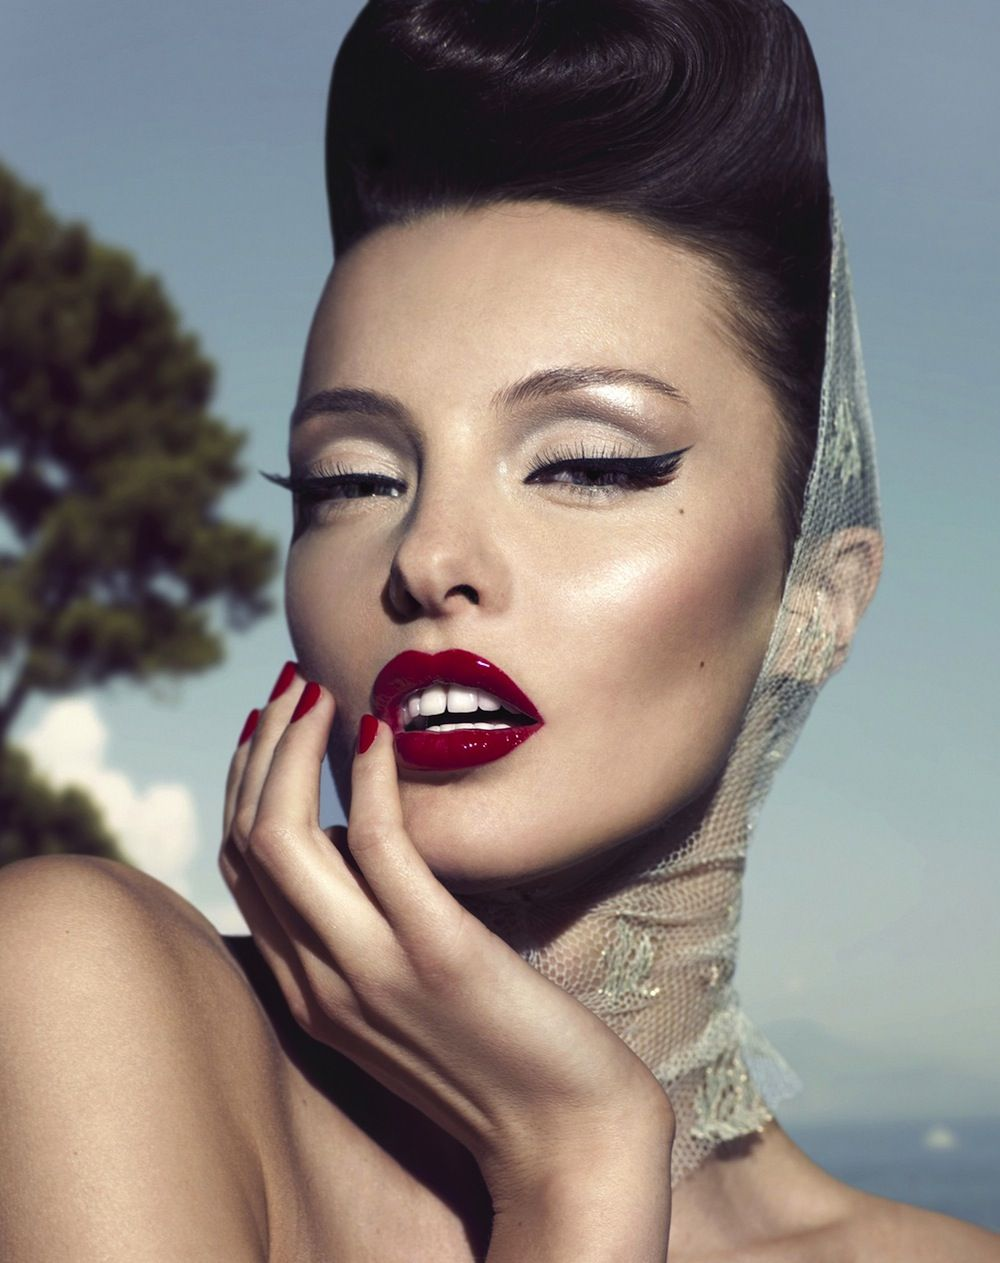 Makeup Artists Meet » Classic Winged Eye; What Do You